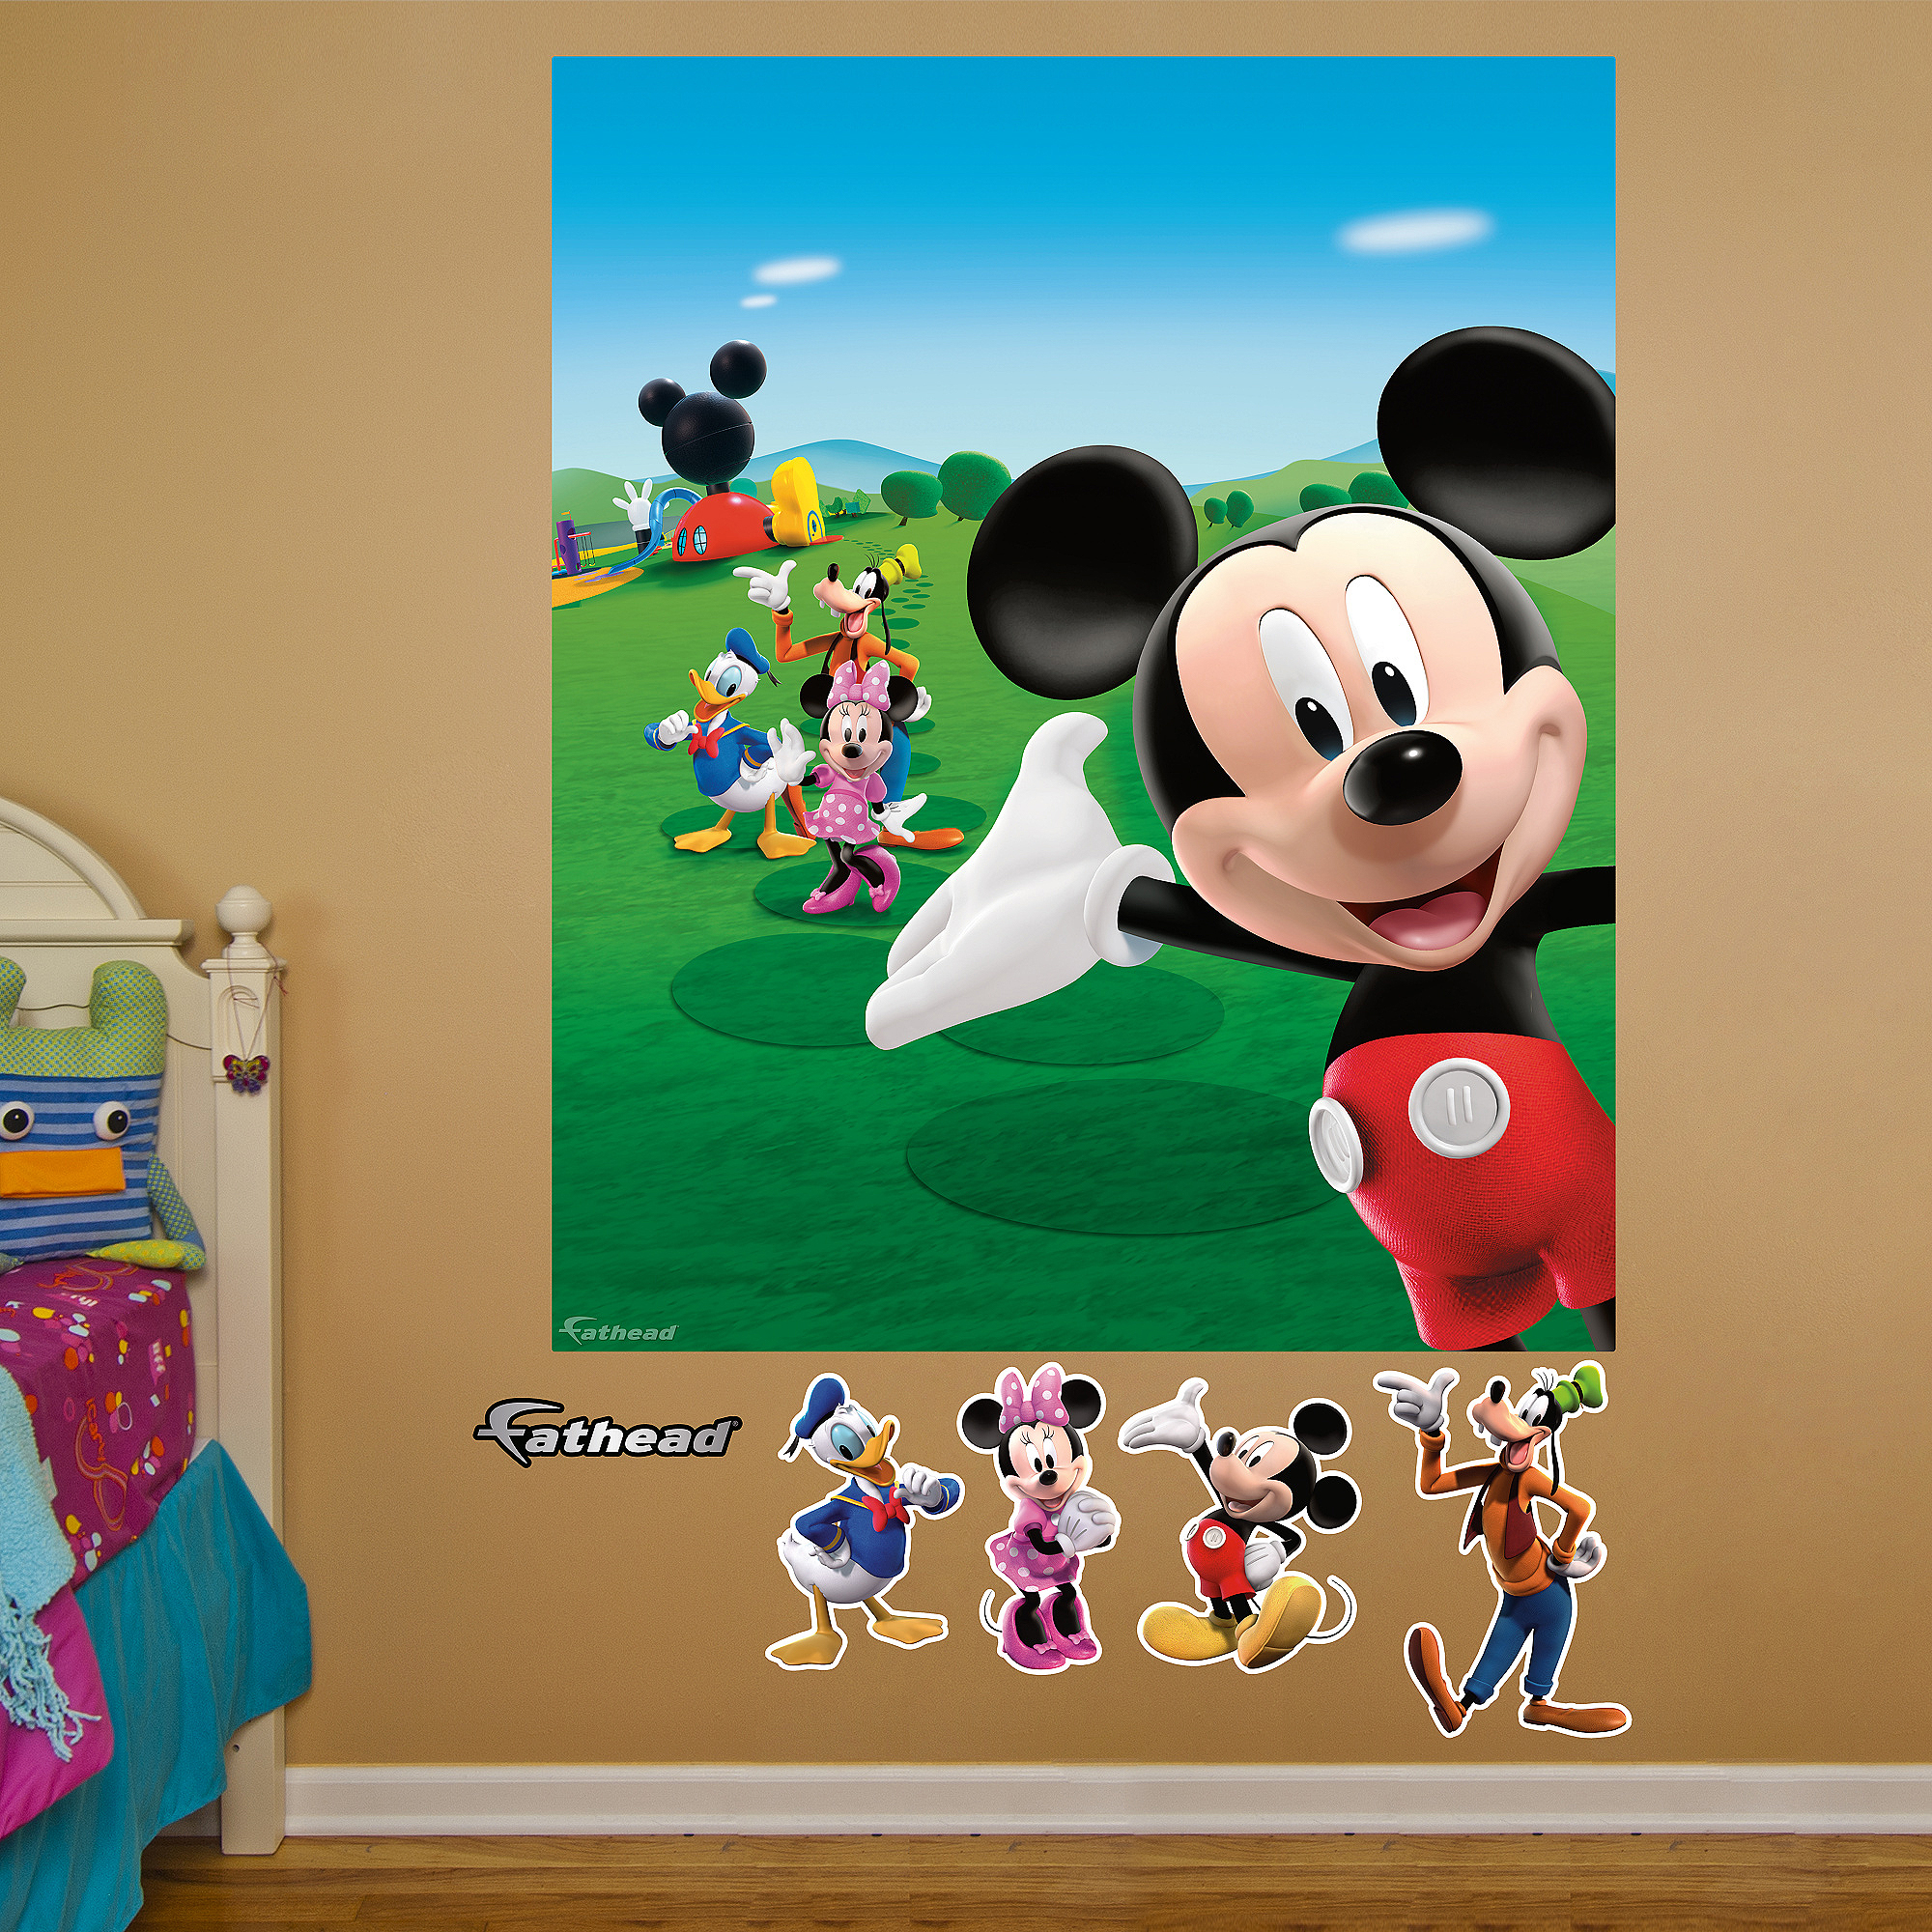 Mickey Mouse Clubhouse Fathead Mural